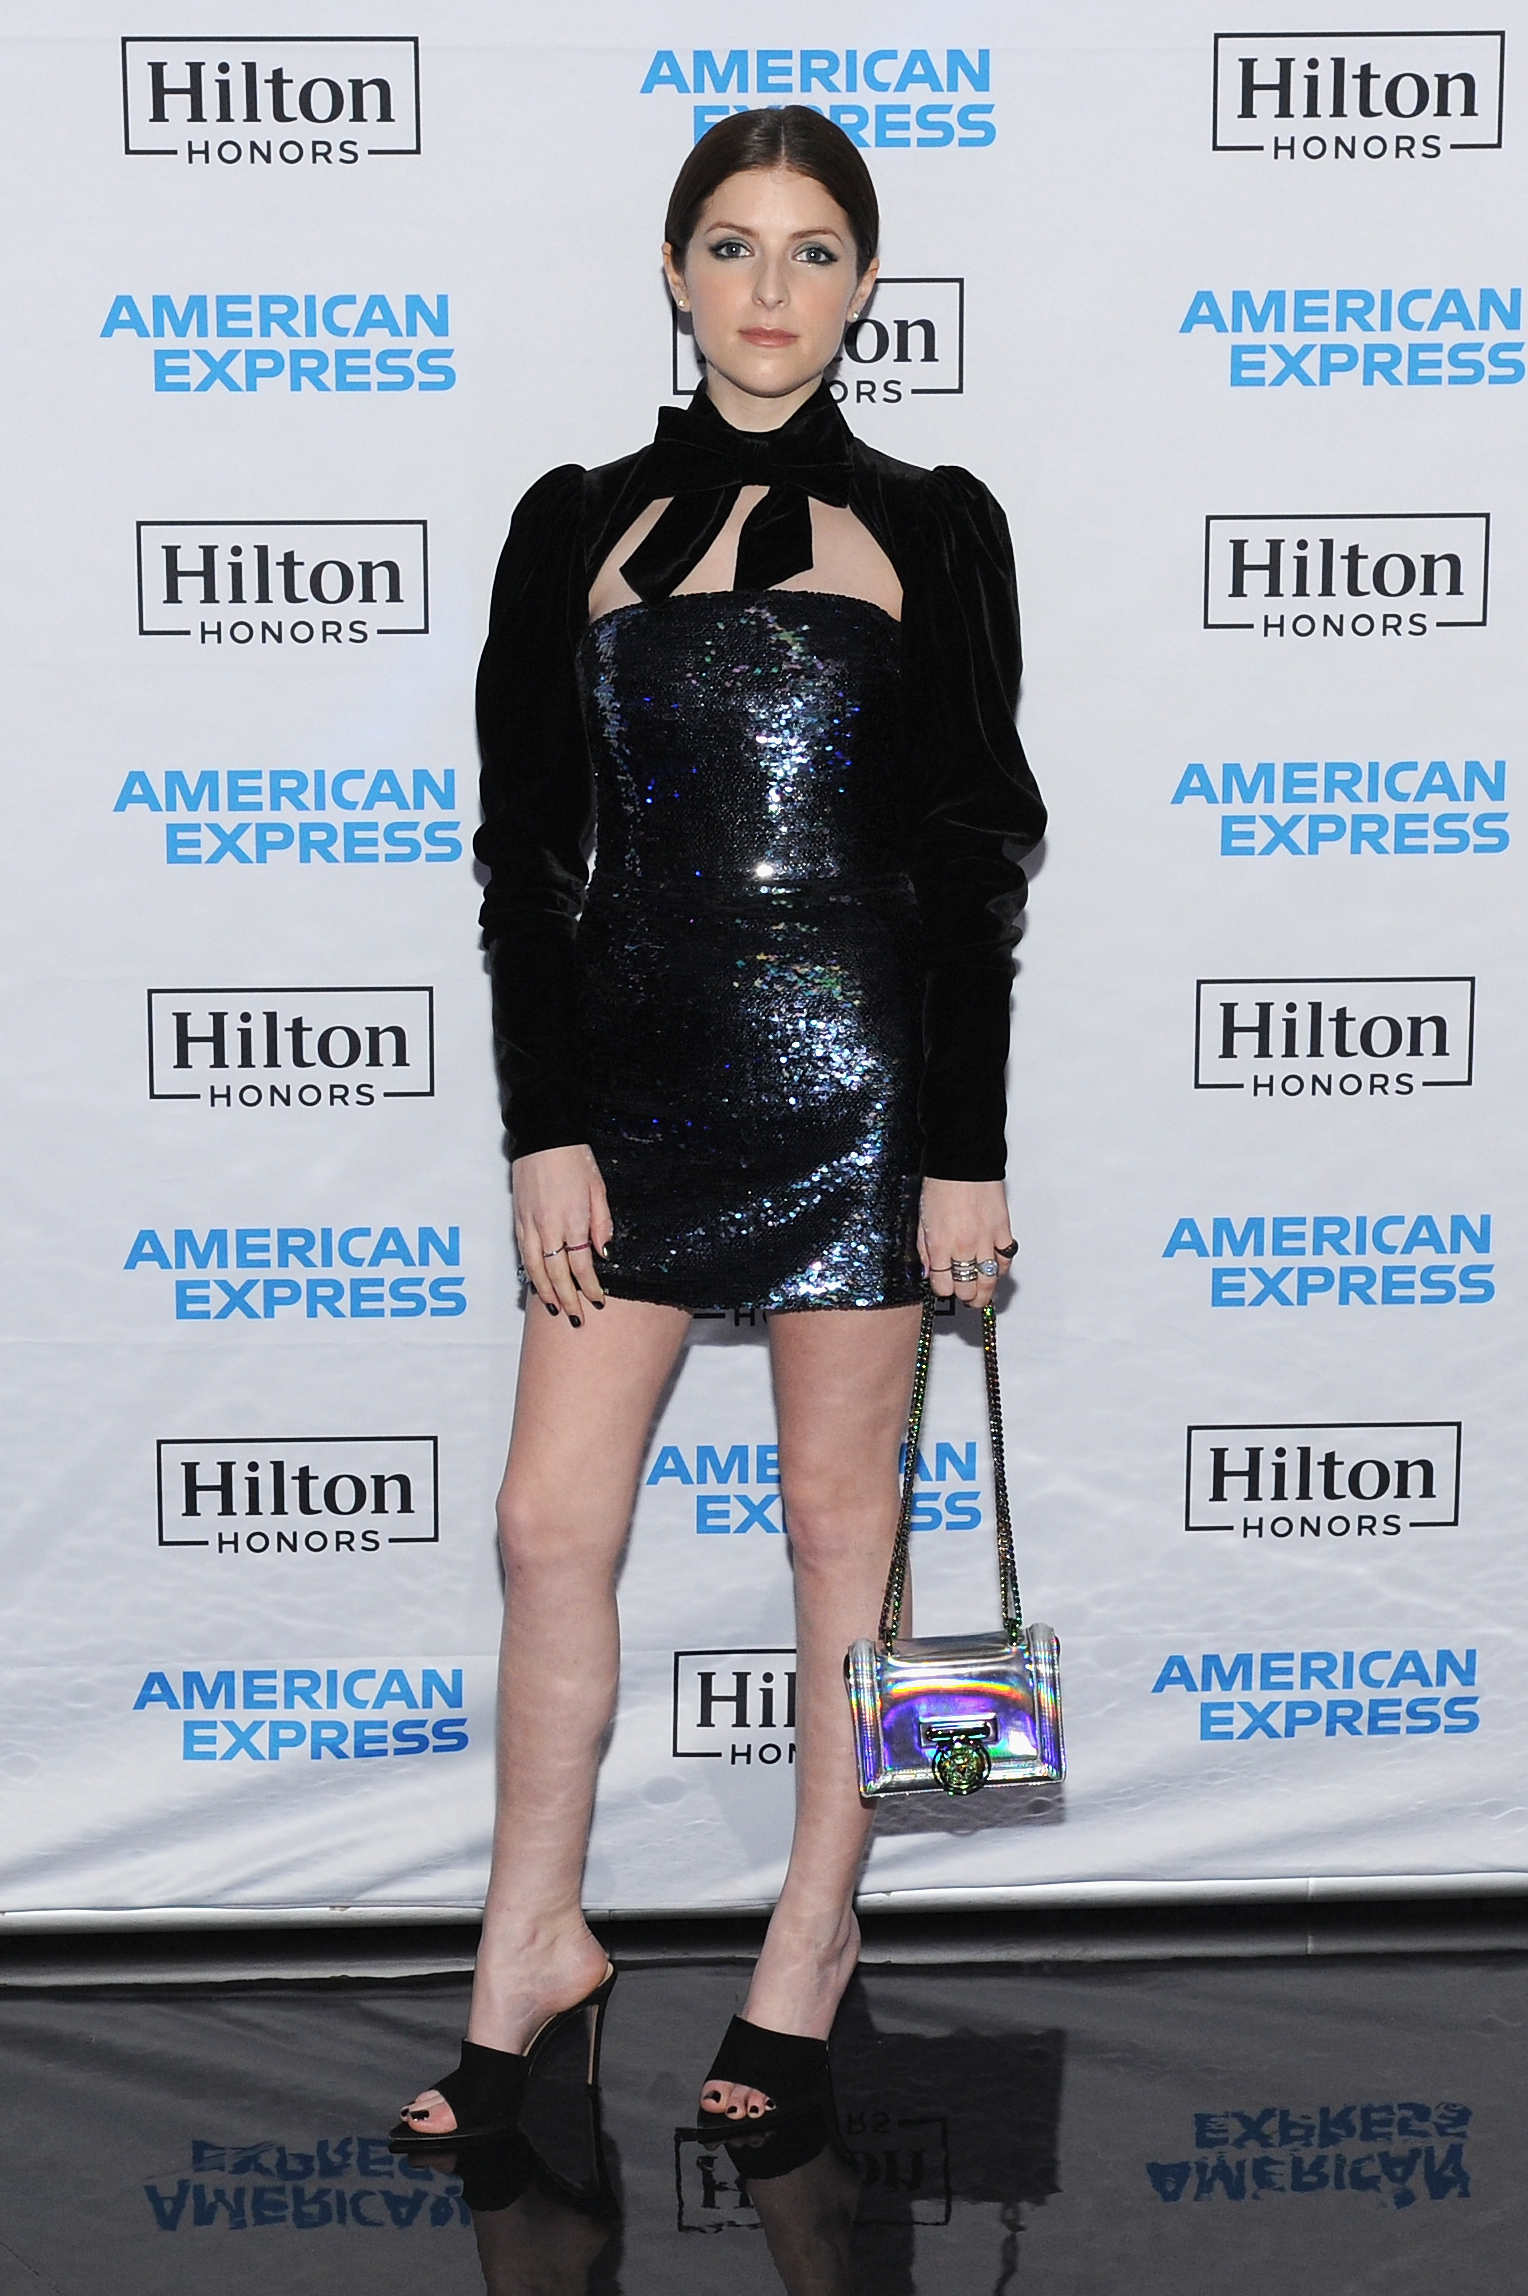 Anna Kendrick attends the Hilton and American Express celebration for Card Members to kick off the Credit Card portfolio for Hilton Honors members at the Conrad New York in New York City on Jan. 30, 2018.